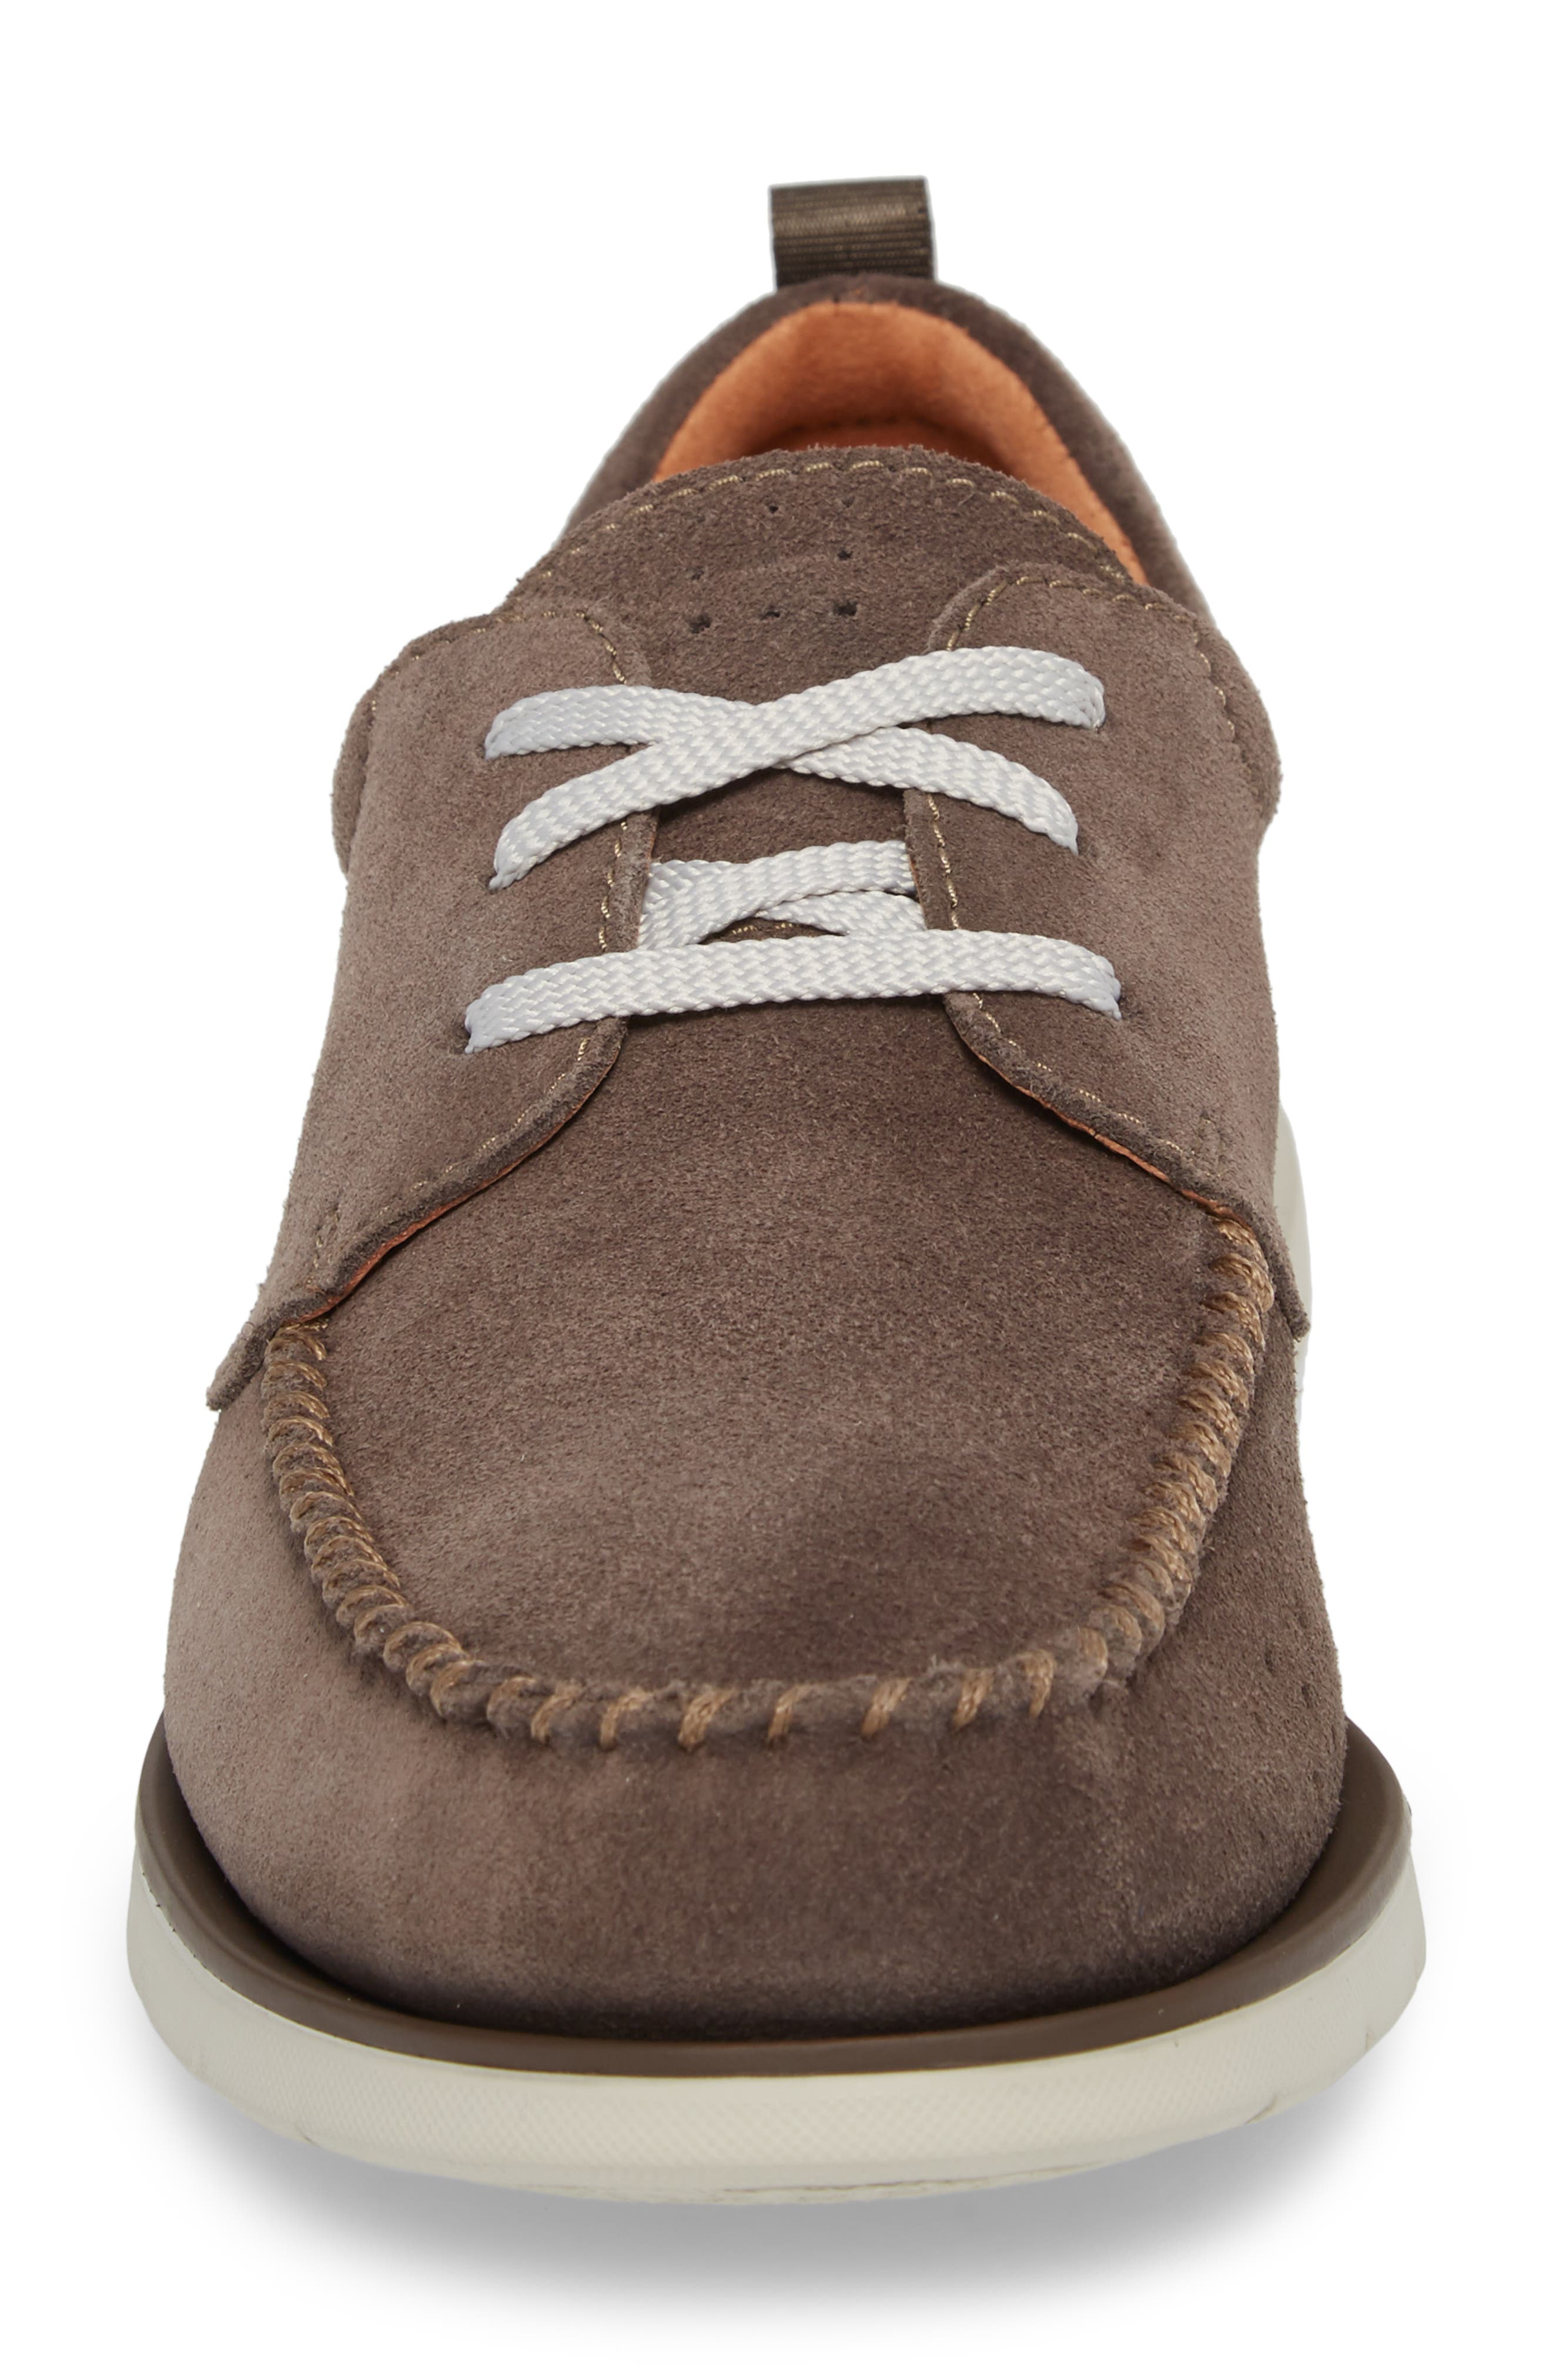 Edgewood Mix Moc Toe Derby,                             Alternate thumbnail 4, color,                             Taupe Suede